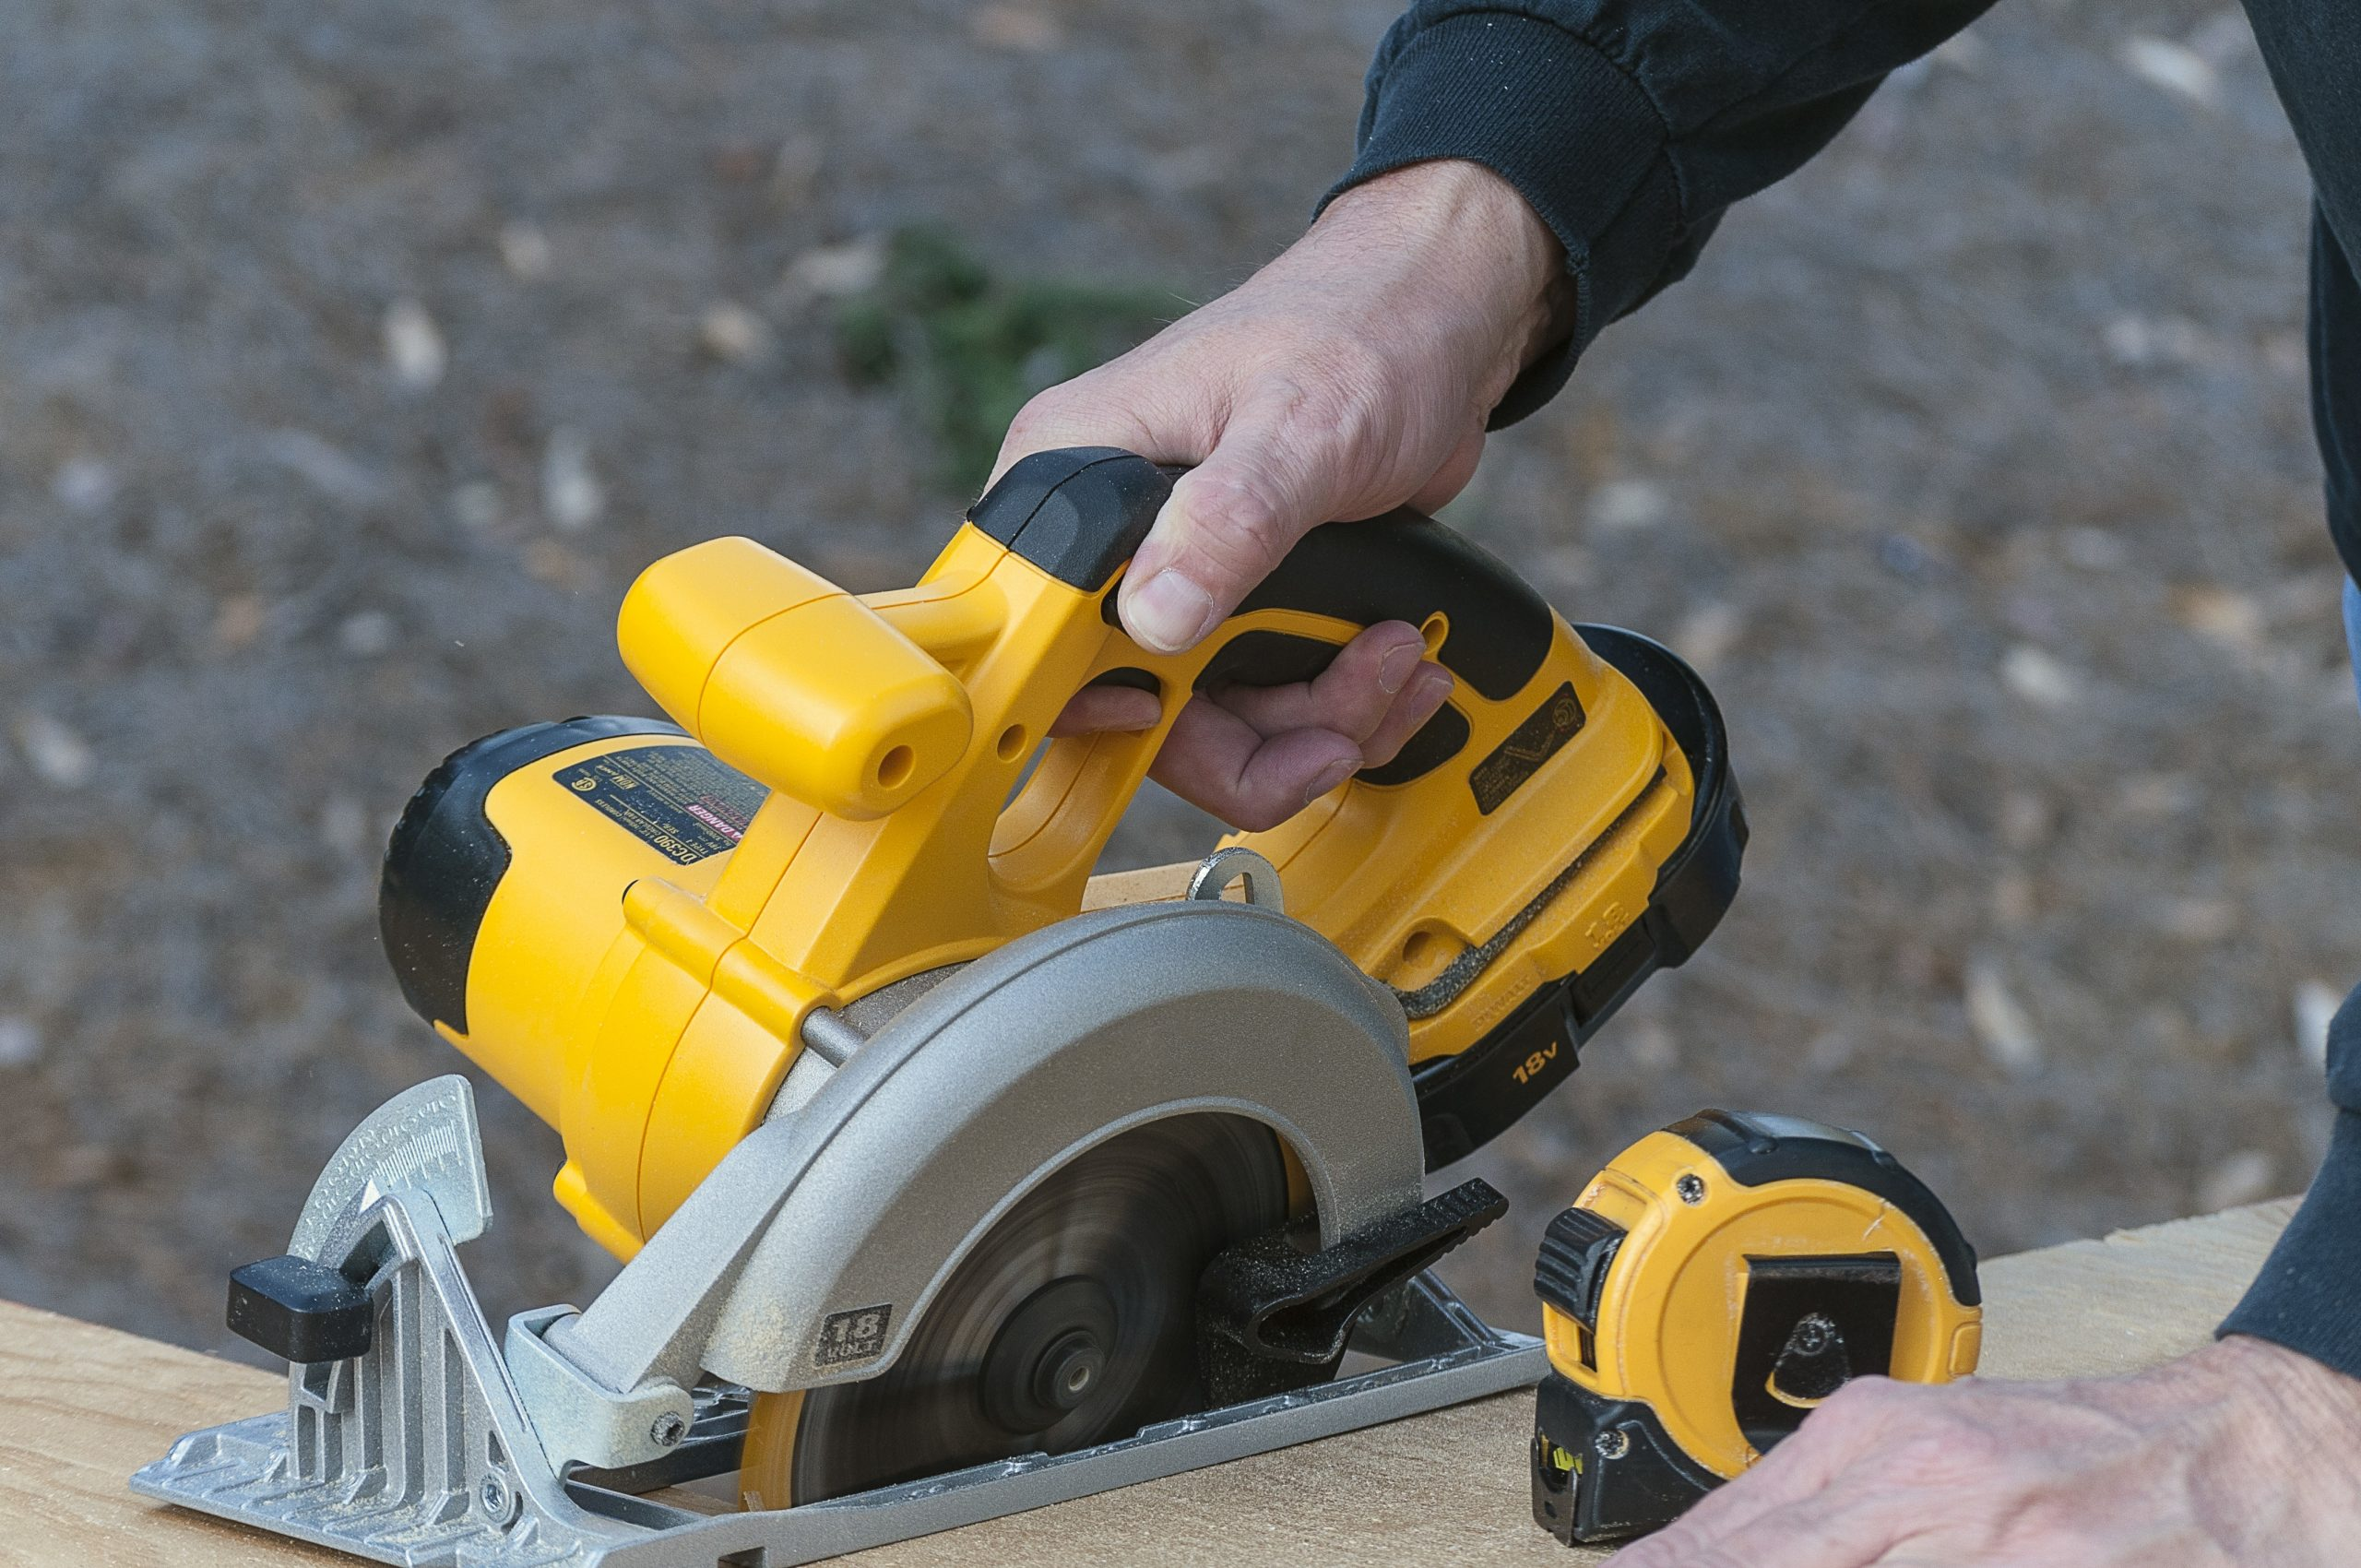 The Best Battery Circular Saw: Shopping Guide and Recommendations (09/21)